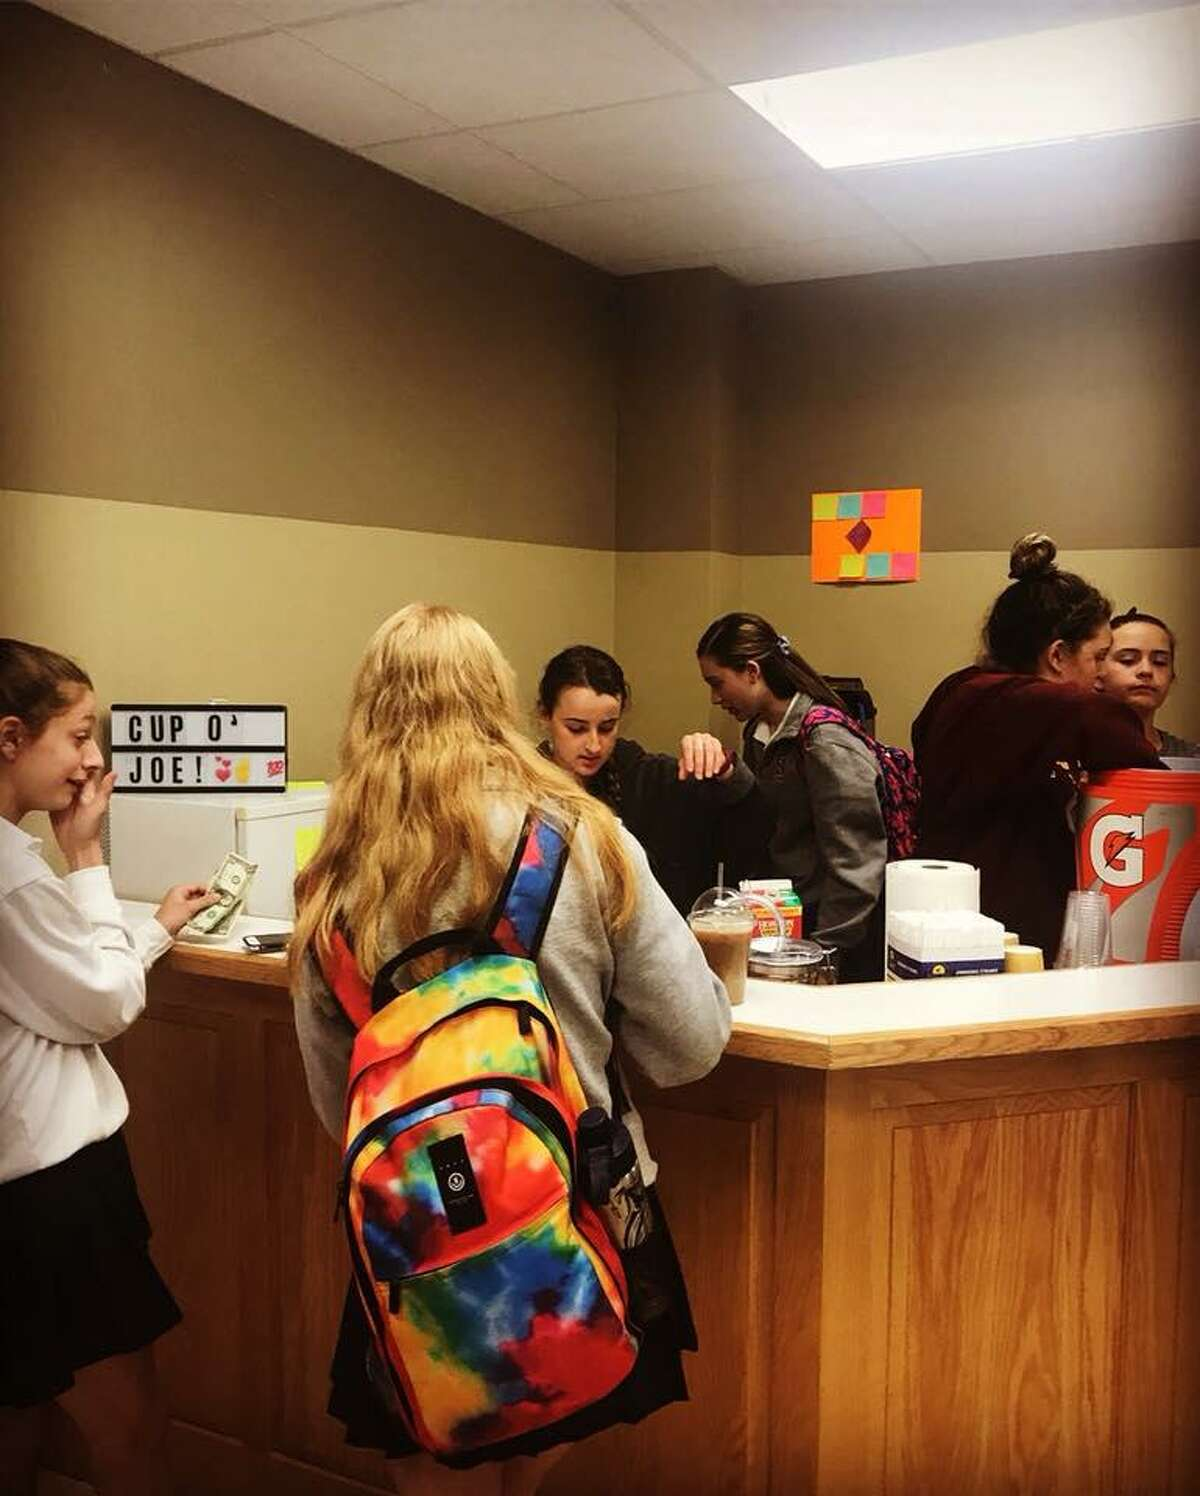 Students at St. Joseph High School in Trumbull opened the Cup O?' Joe Café in the school to benefit the Café de las Sonrisas in Granada, Nicaragua.